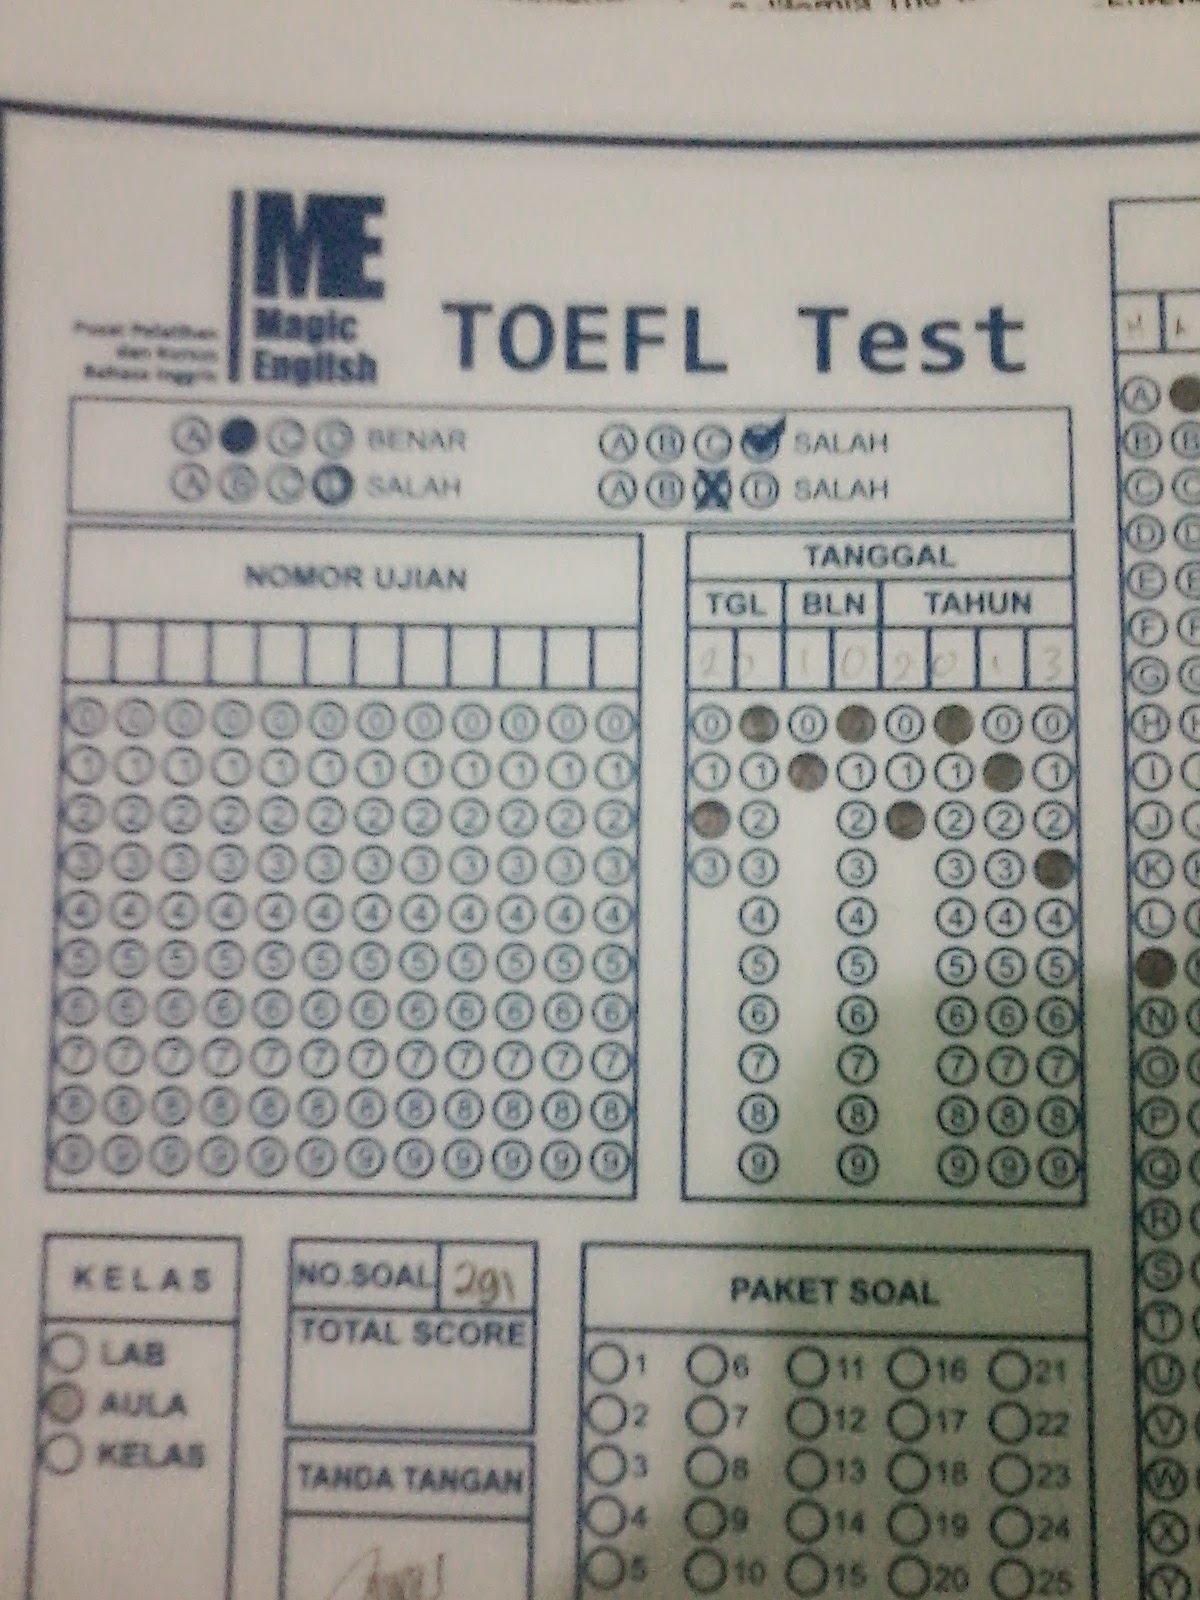 TOEFL Magic English